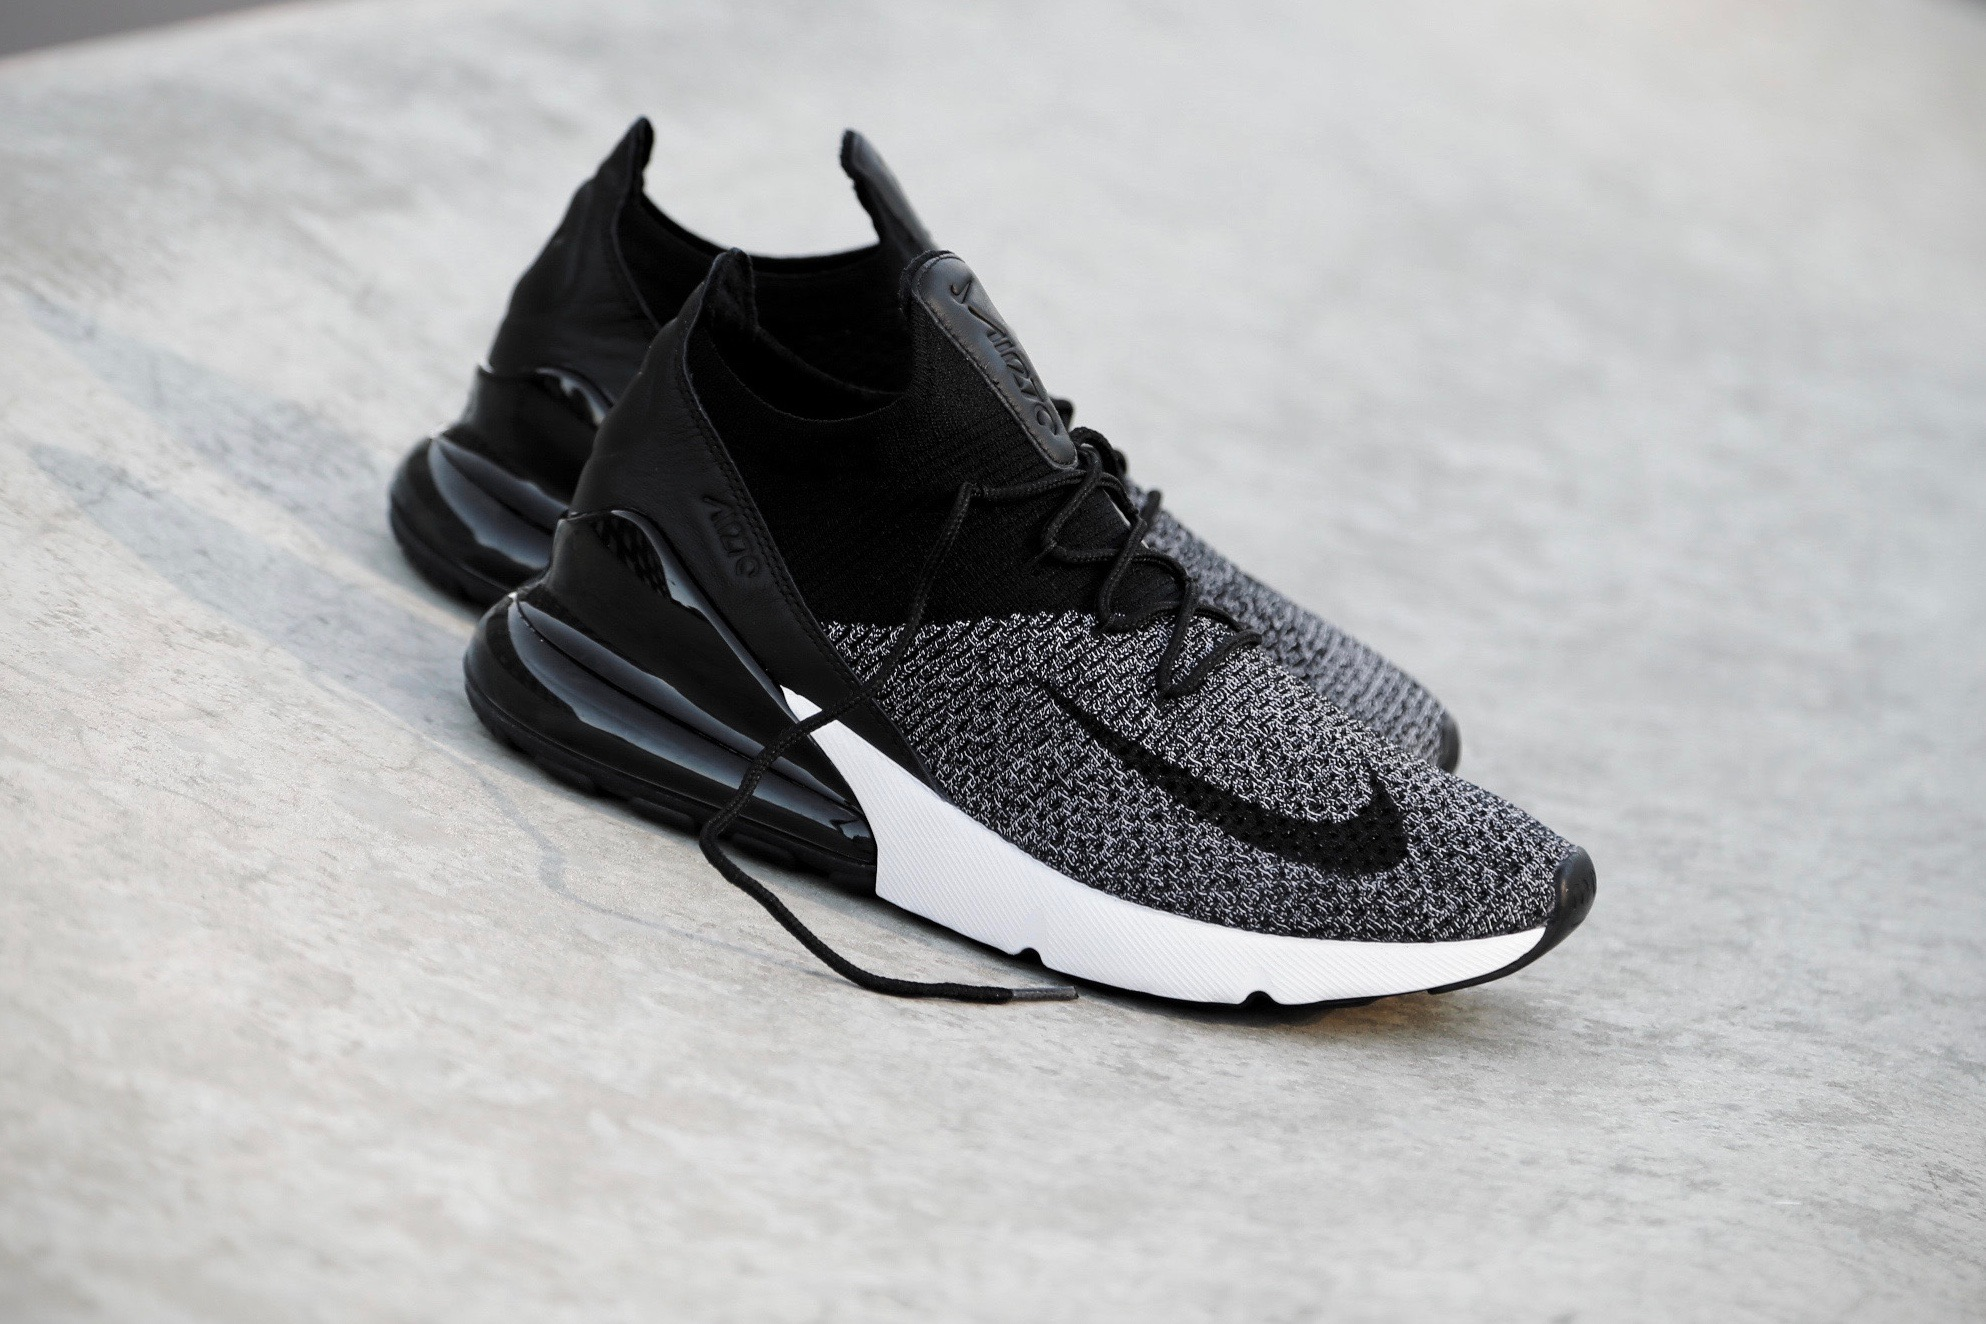 los angeles f4993 6dd12 Nike Air Max 270 Flyknit - Black / White